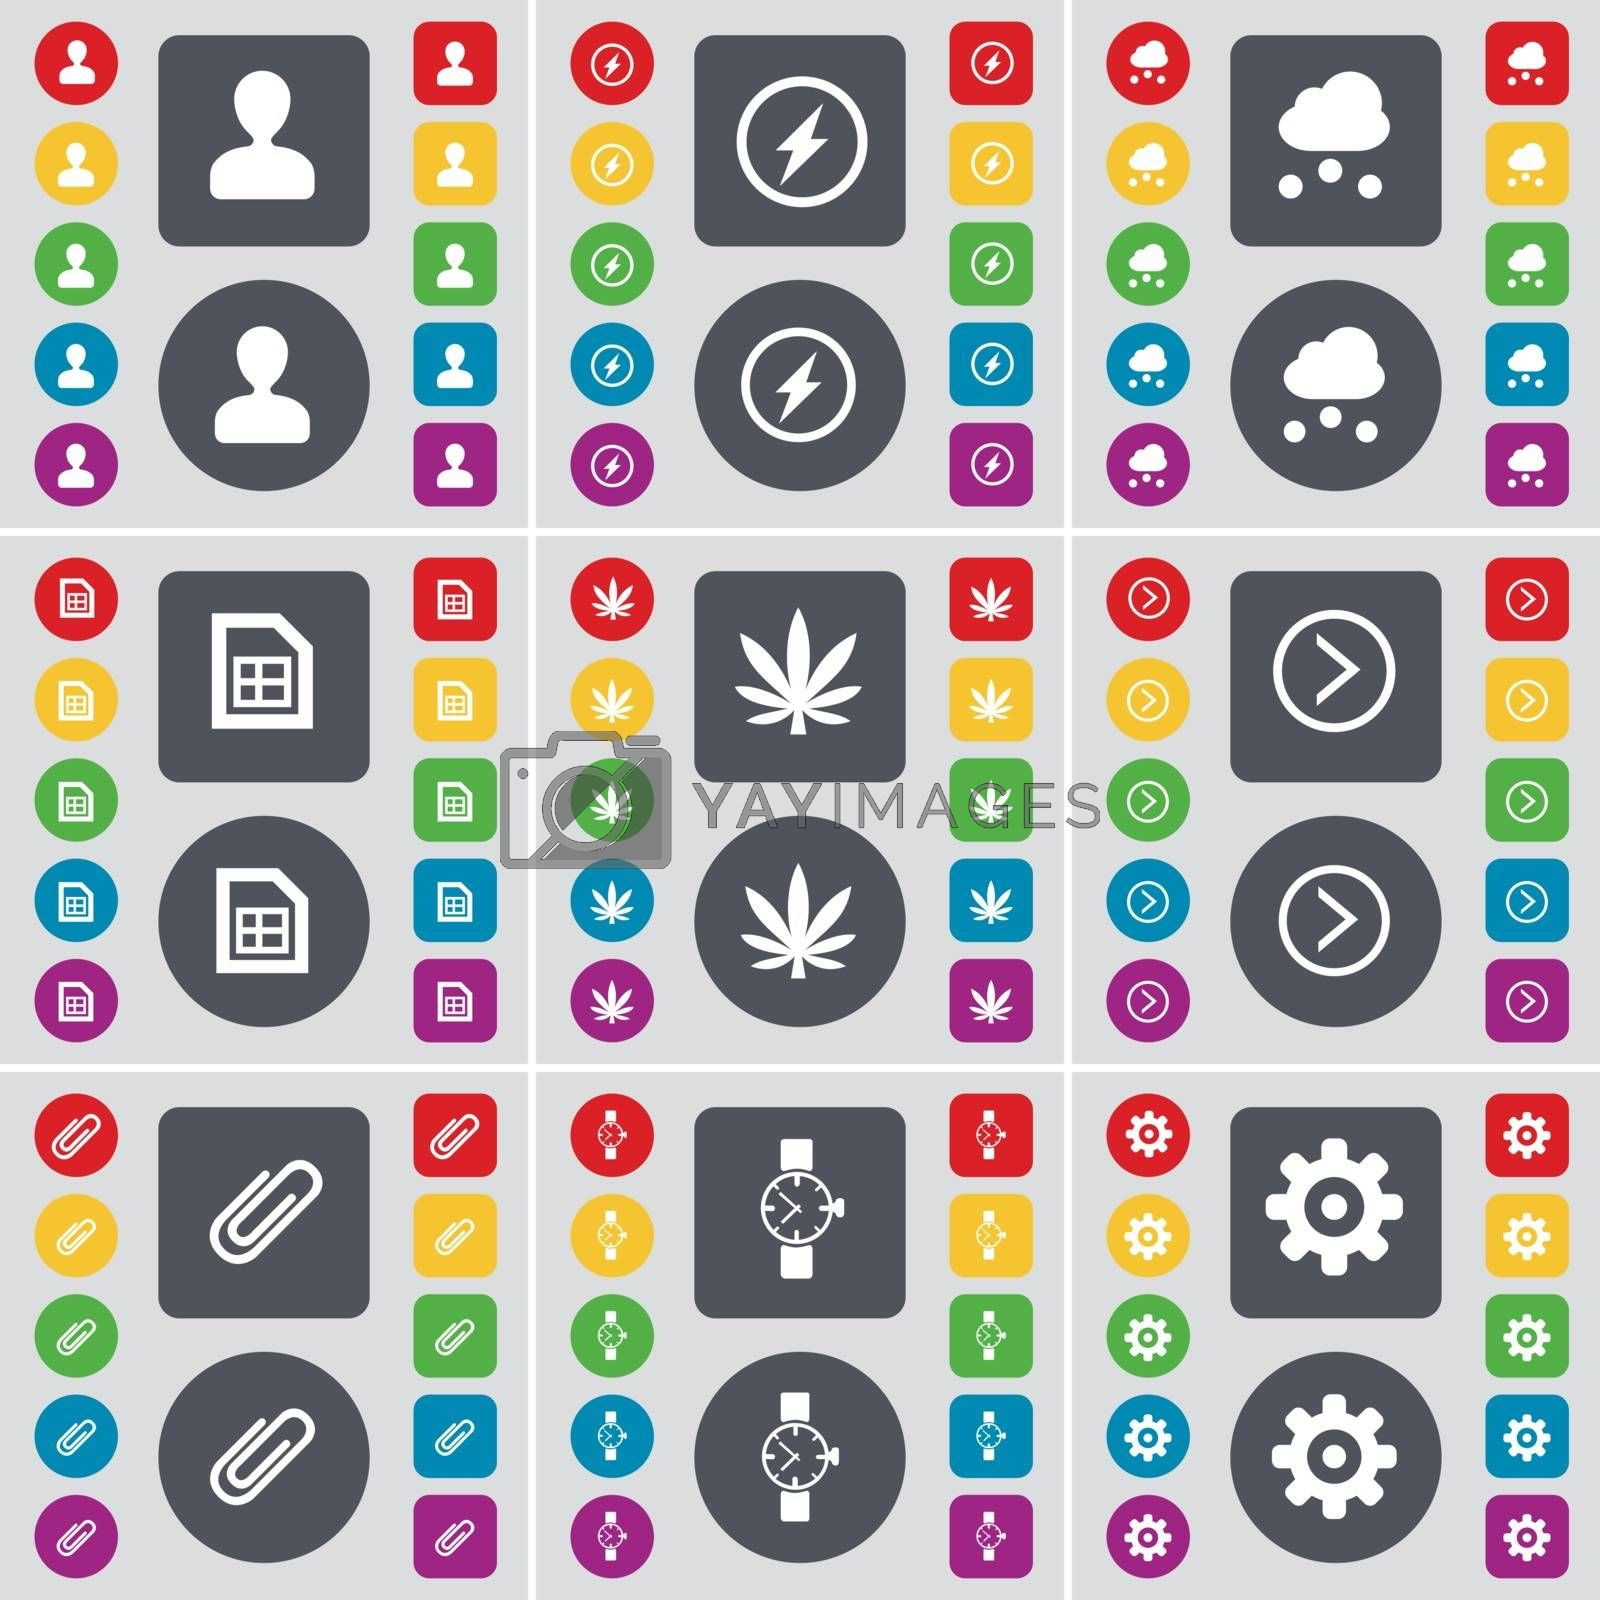 Avatar, Flash, Cloud, File, Marijuana, Arrow right, Clip, Wrist watch, Gear icon symbol. A large set of flat, colored buttons for your design. Vector by serhii_lohvyniuk